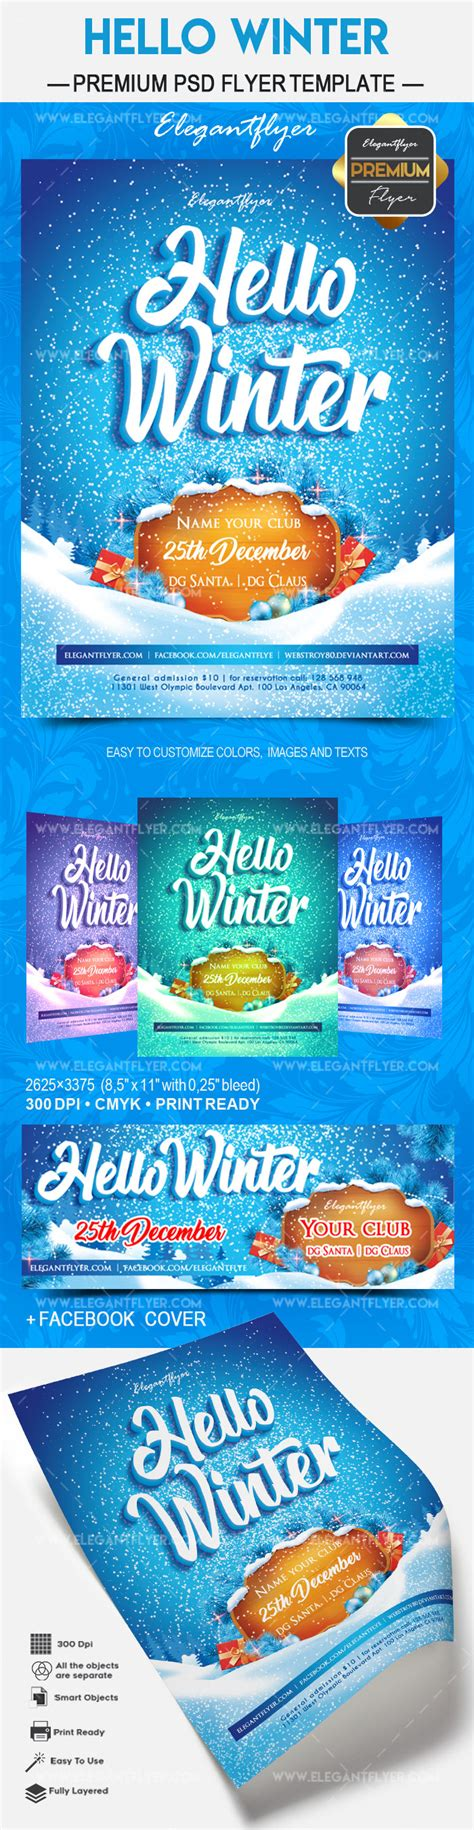 Hello Winter 2018 Flyer Psd Template By Elegantflyer Ad Template 2018